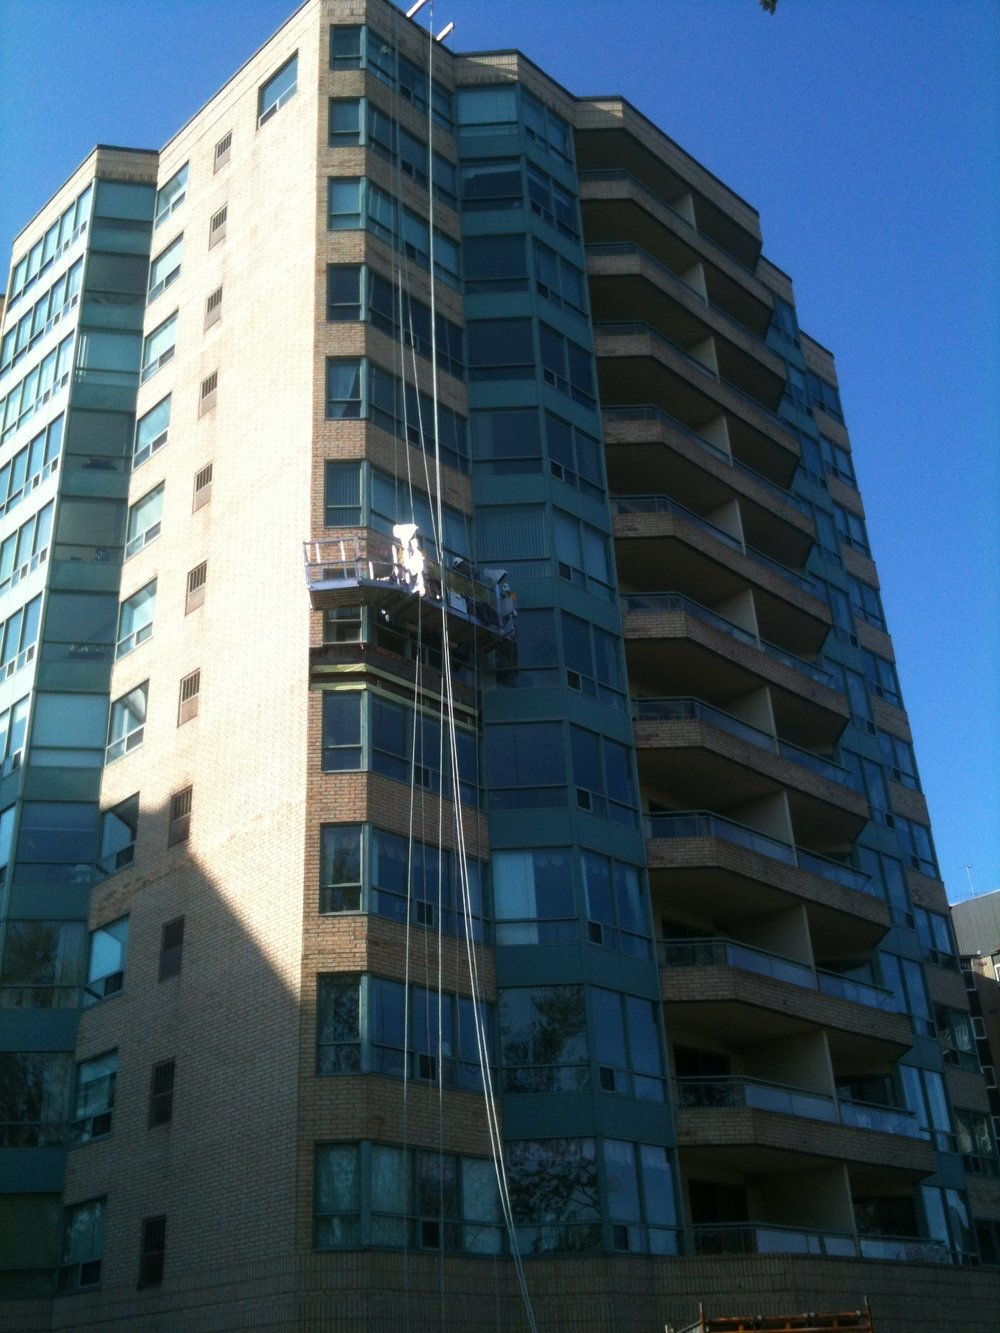 - Installation of new through-wall flashingsNew window and control joint sealants